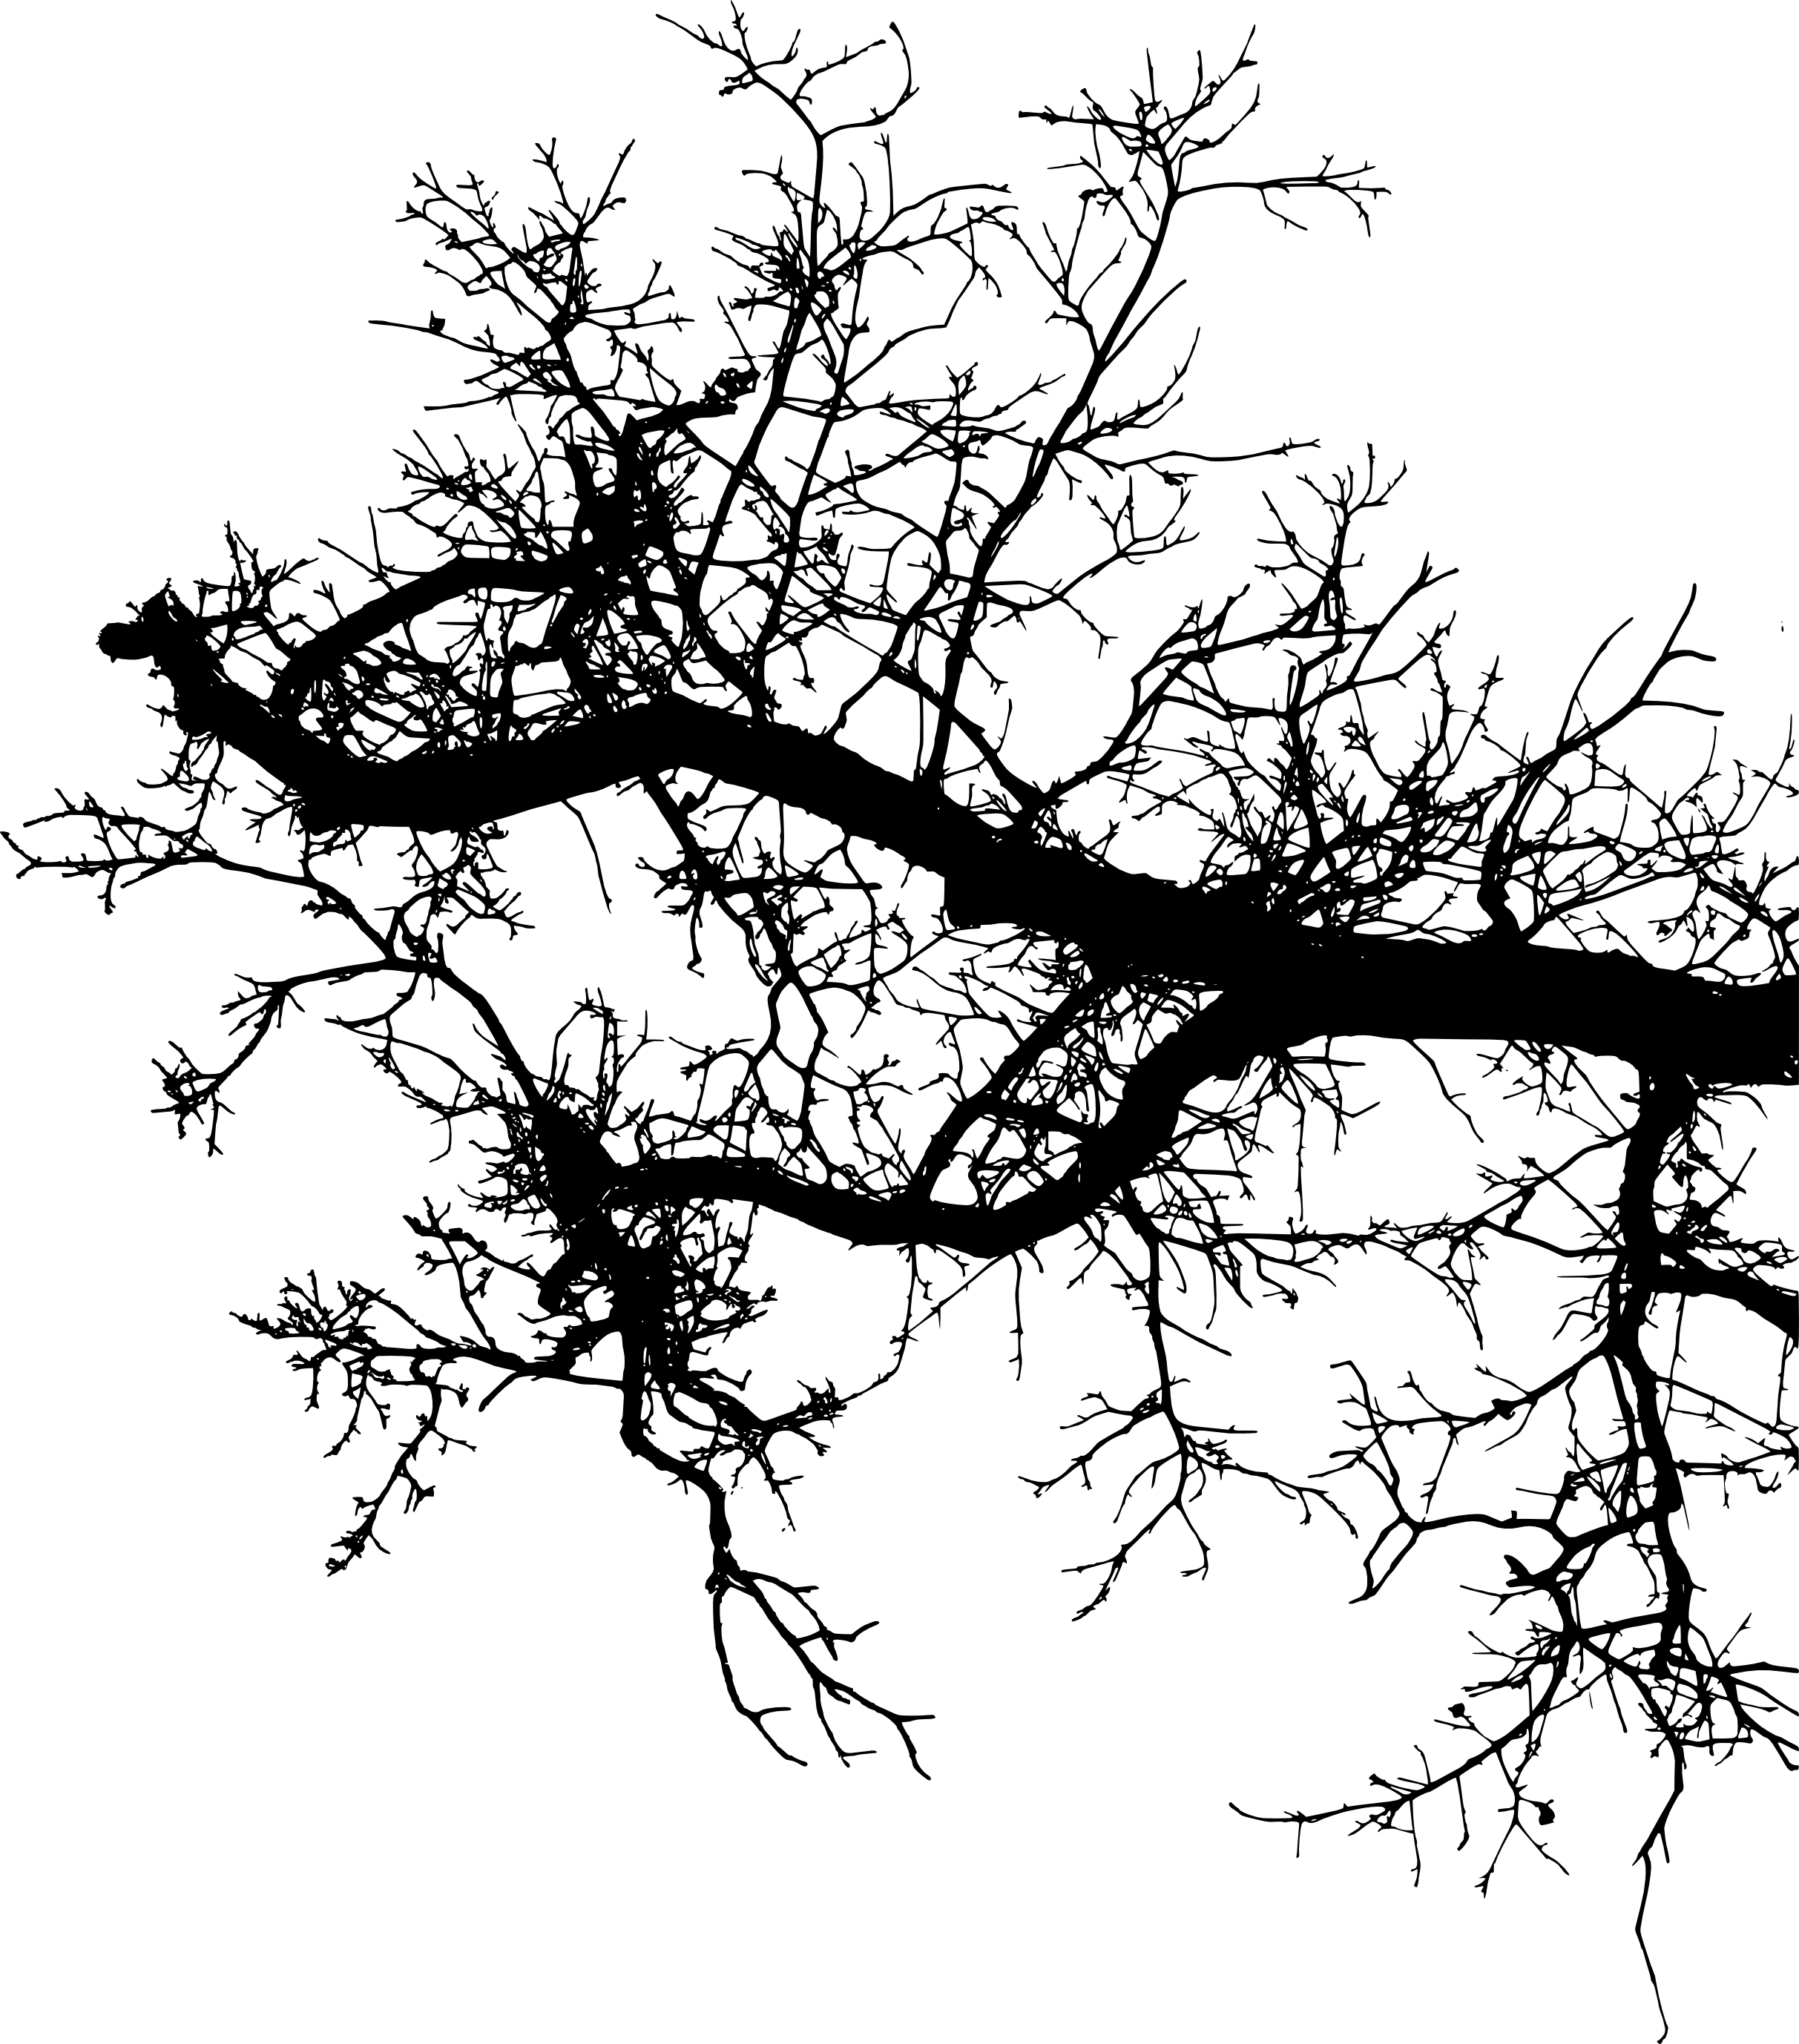 tree branch silhouette silhouette tree branches at getdrawings free download branch silhouette tree